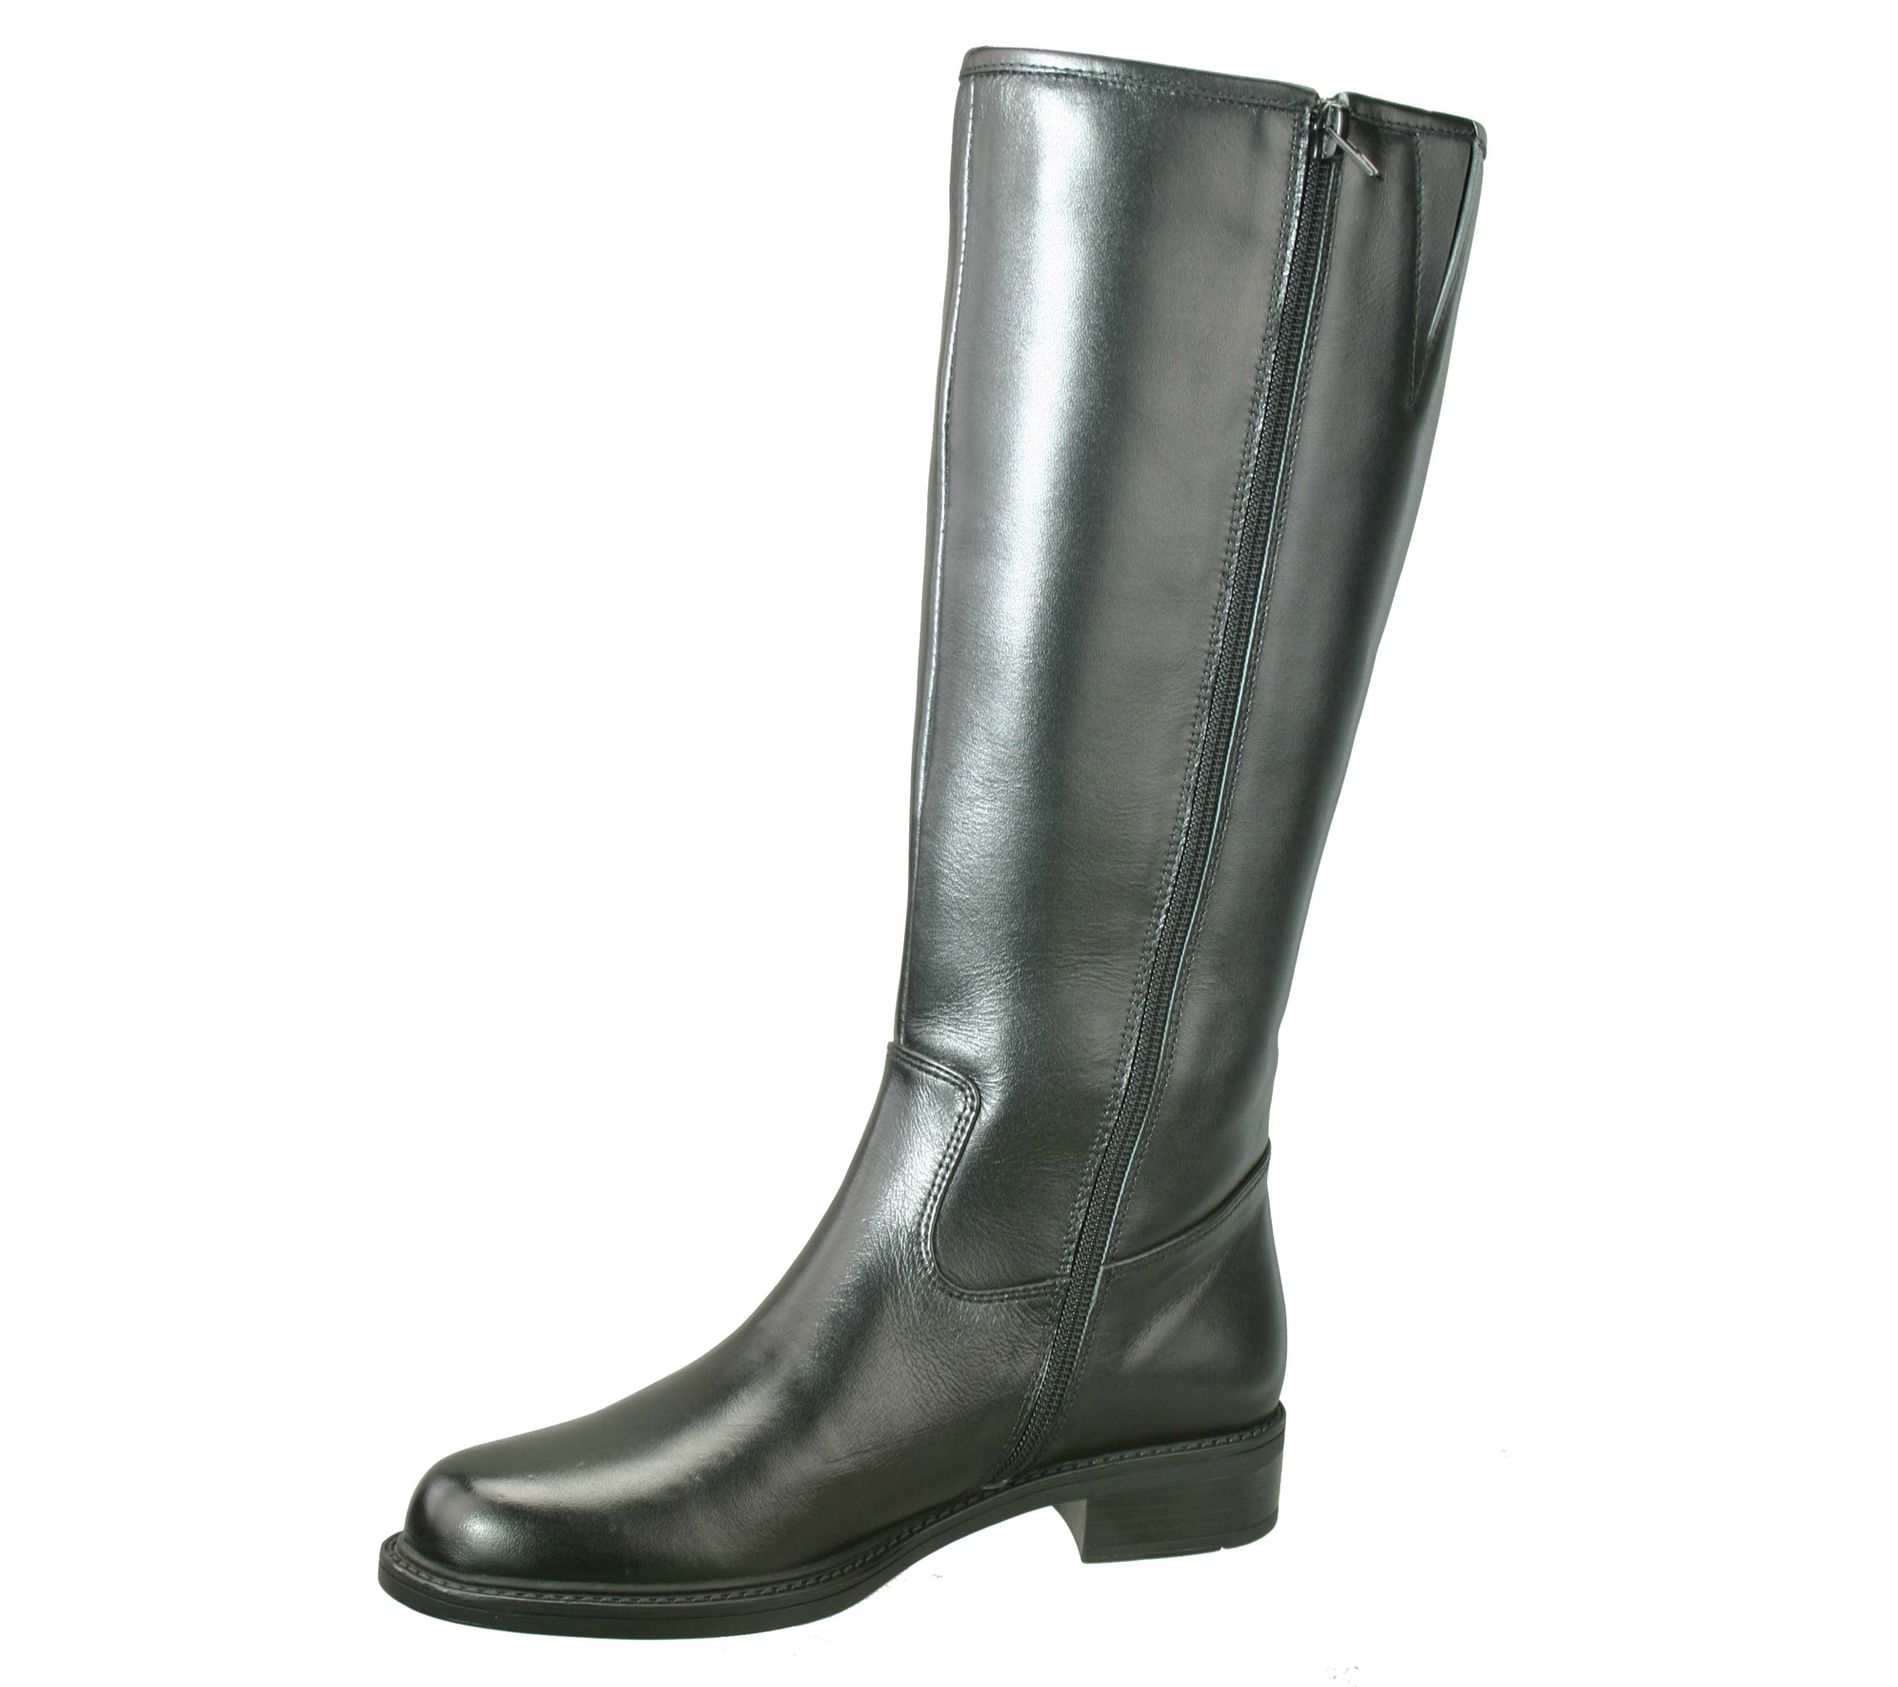 31870b90fde David Tate Extra-Wide-Calf Tall Leather Boots -Best 20 - Page 1 — QVC.com